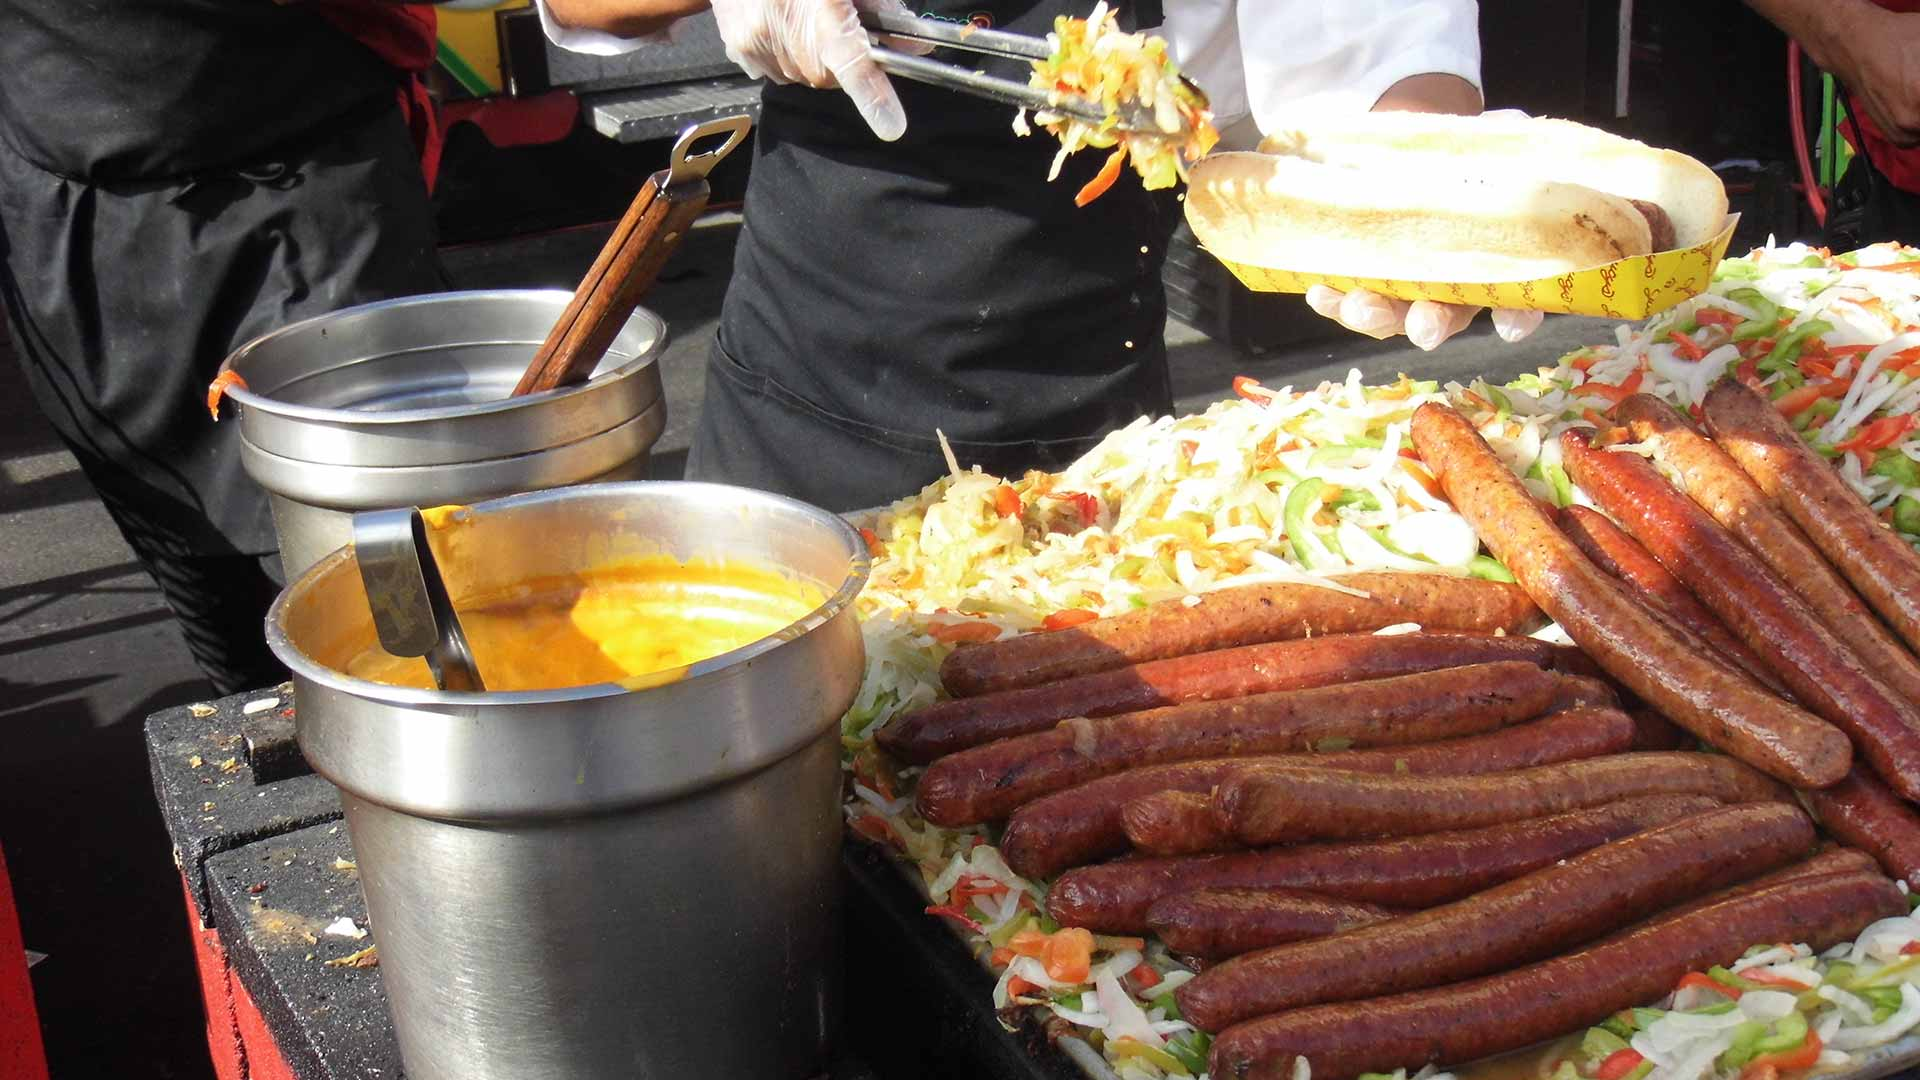 Sausages, veggies and cheese being cooked at the San Diego County Fair